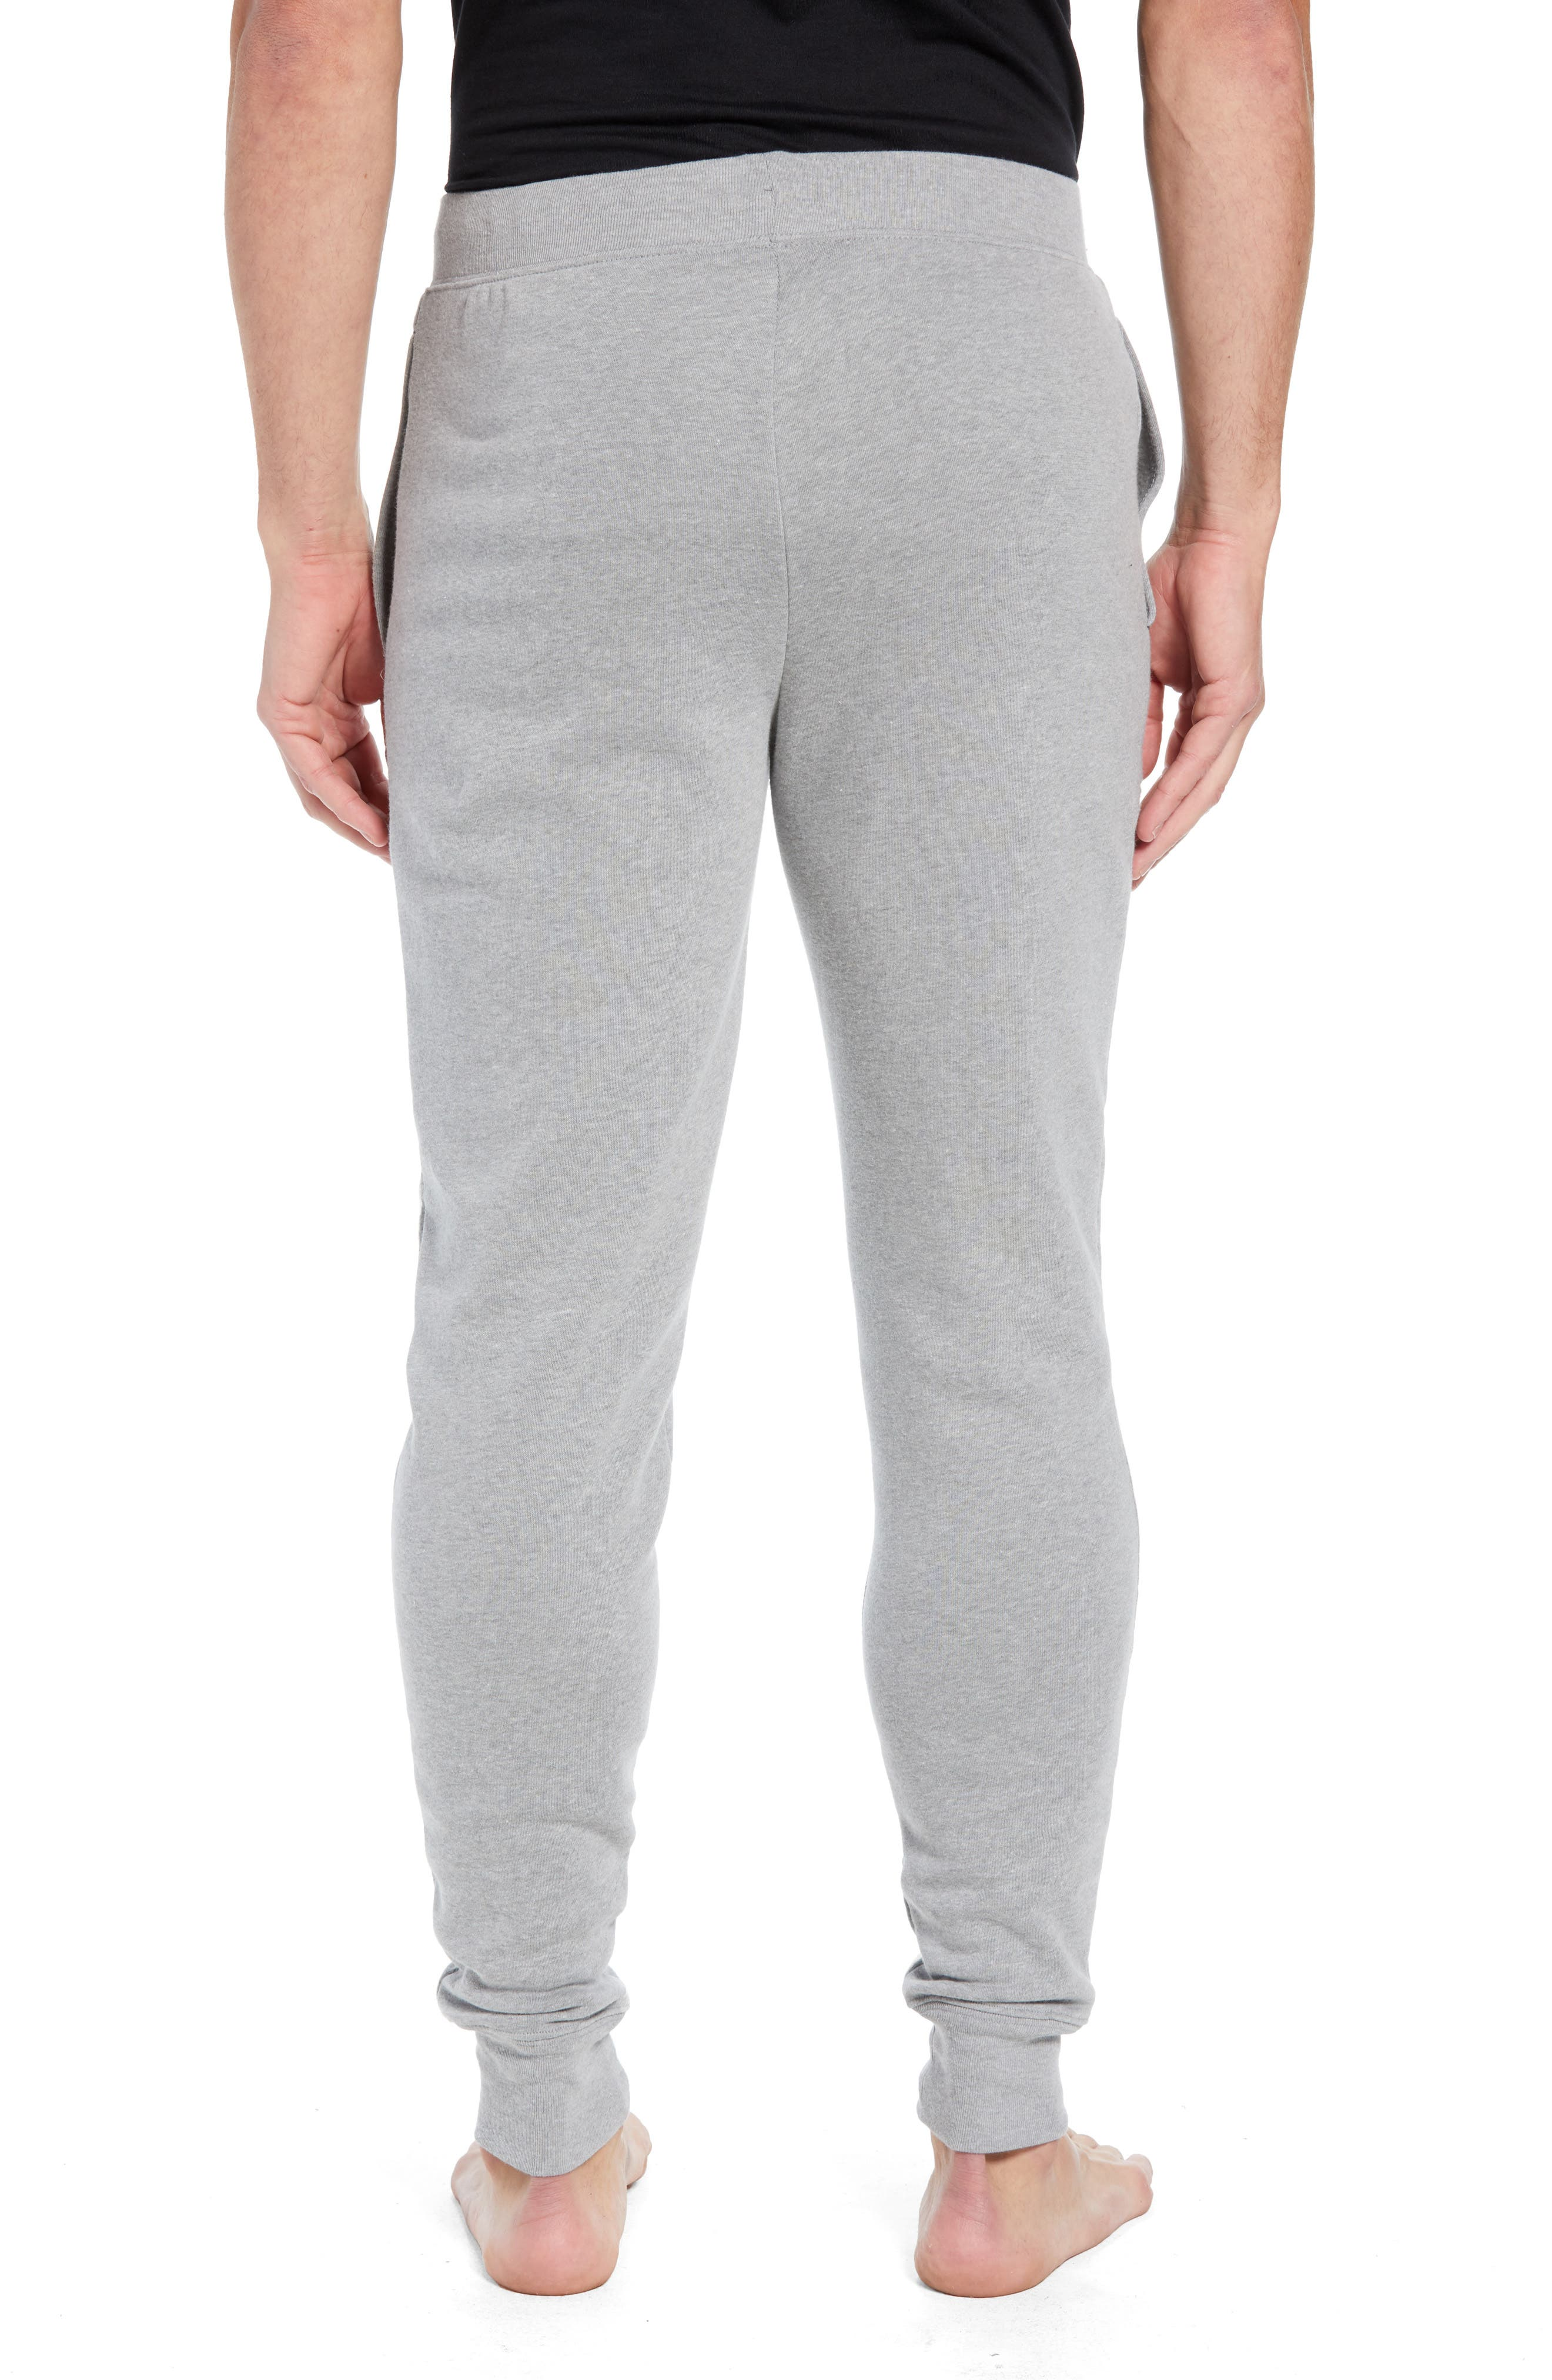 Brushed Jersey Cotton Blend Jogger Pants,                             Alternate thumbnail 2, color,                             ANDOVER HEATHER GREY